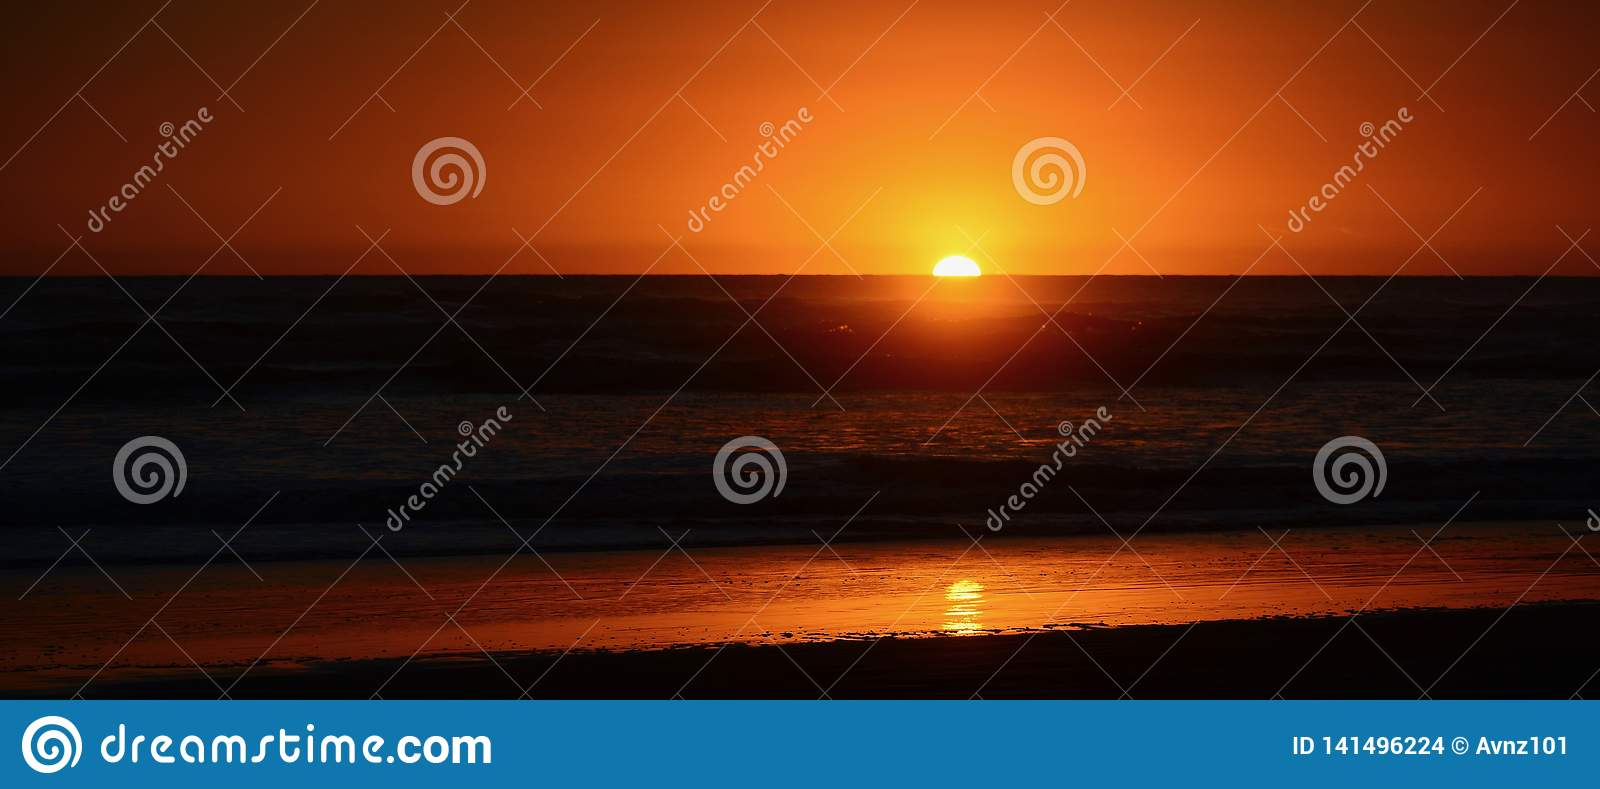 Dramatic sunset colours; beautiful sunset on a beach. Sun reflection in the water.